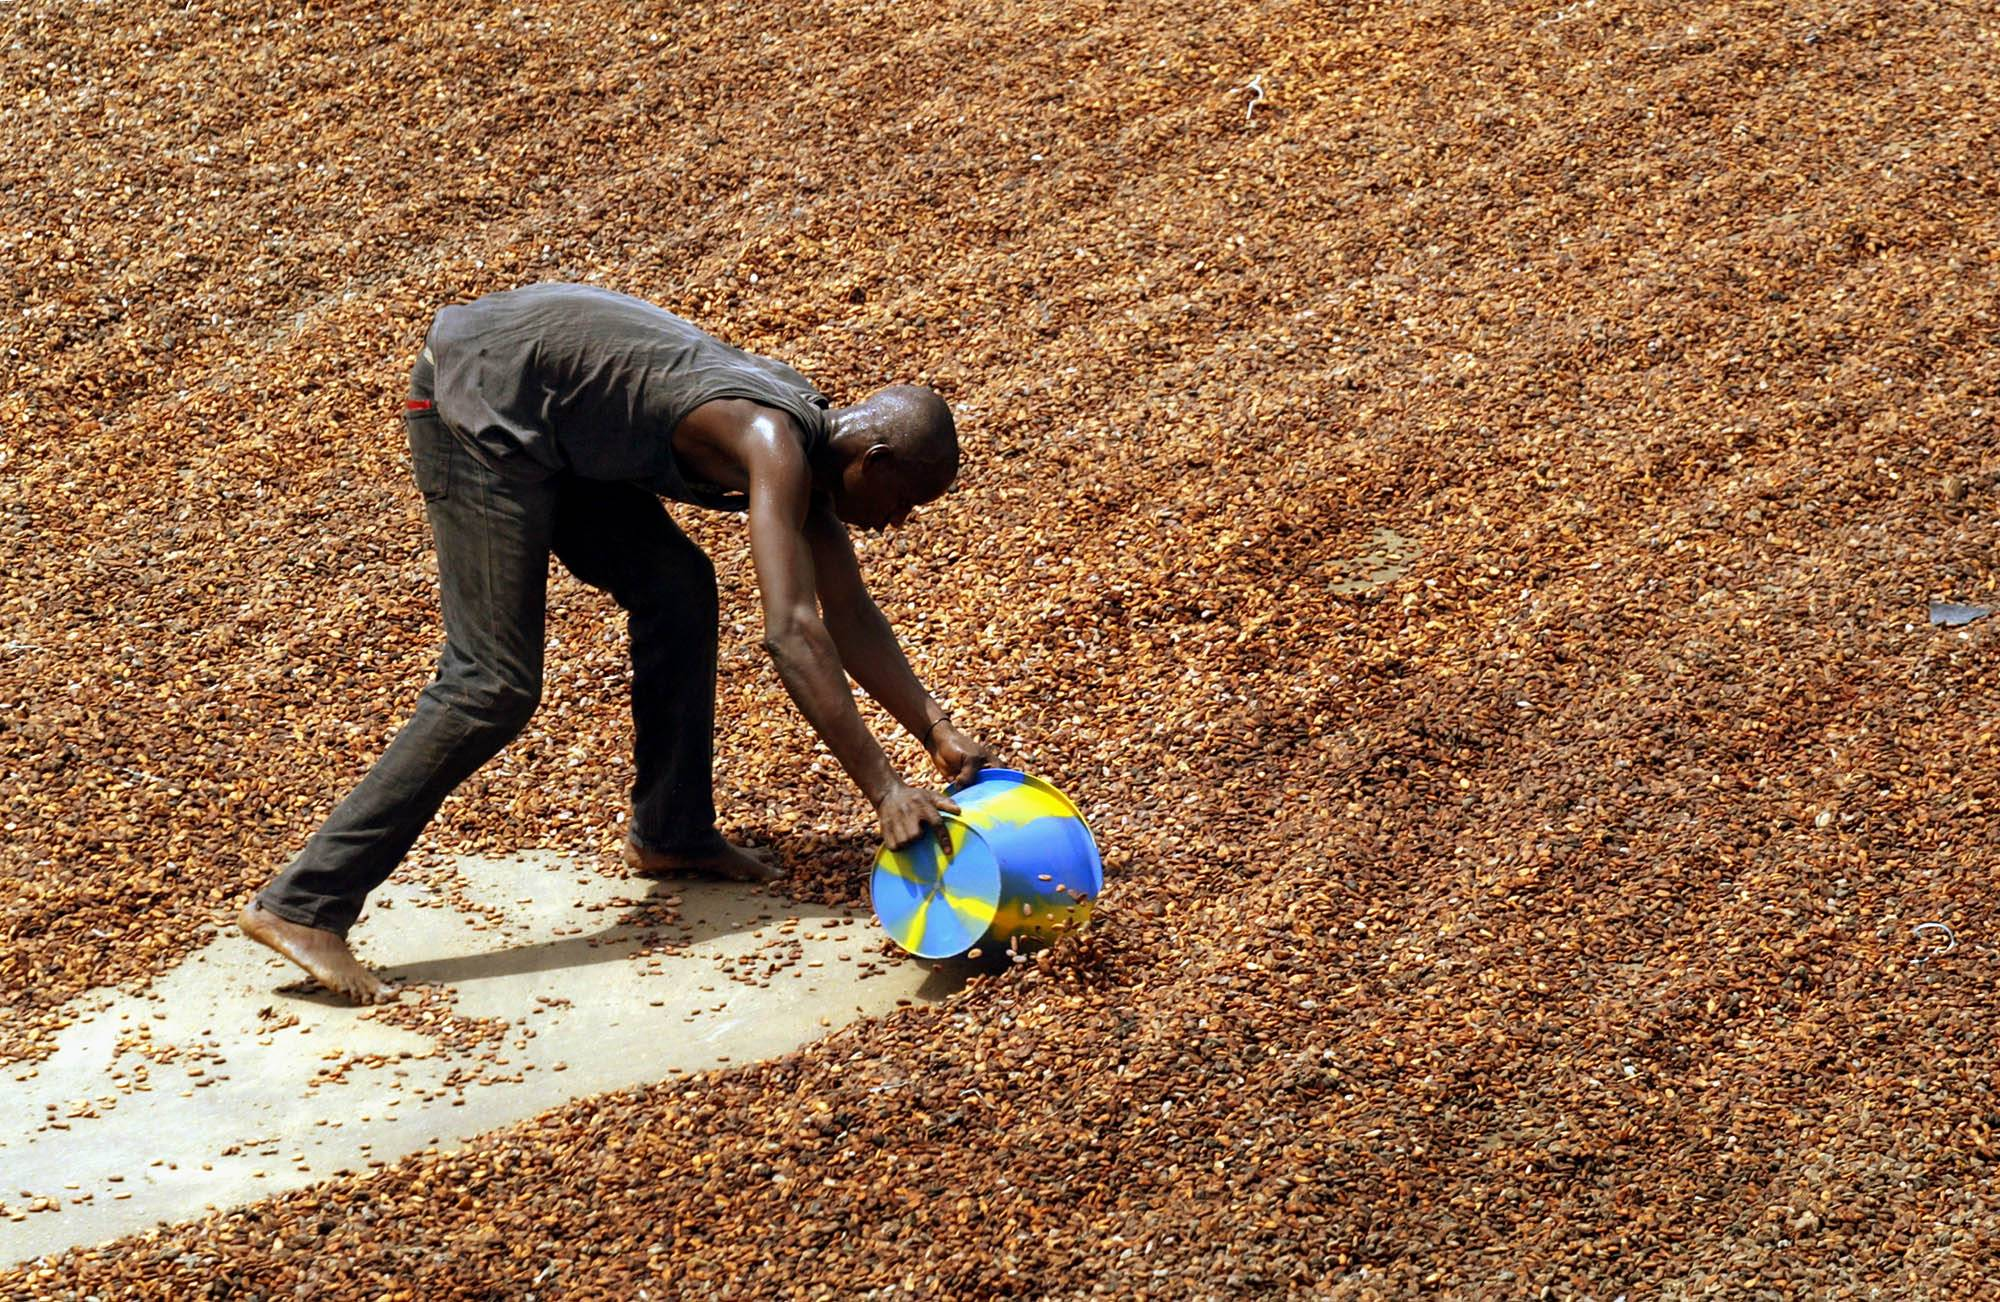 A worker collects sun-dried cocoa beans to be put into into sacks for export in Guiglo, Ivory Coast. A large-scale study is being launched in 2014 to see if pills containing the nutrients in dark chocolate can help prevent heart attacks and strokes.